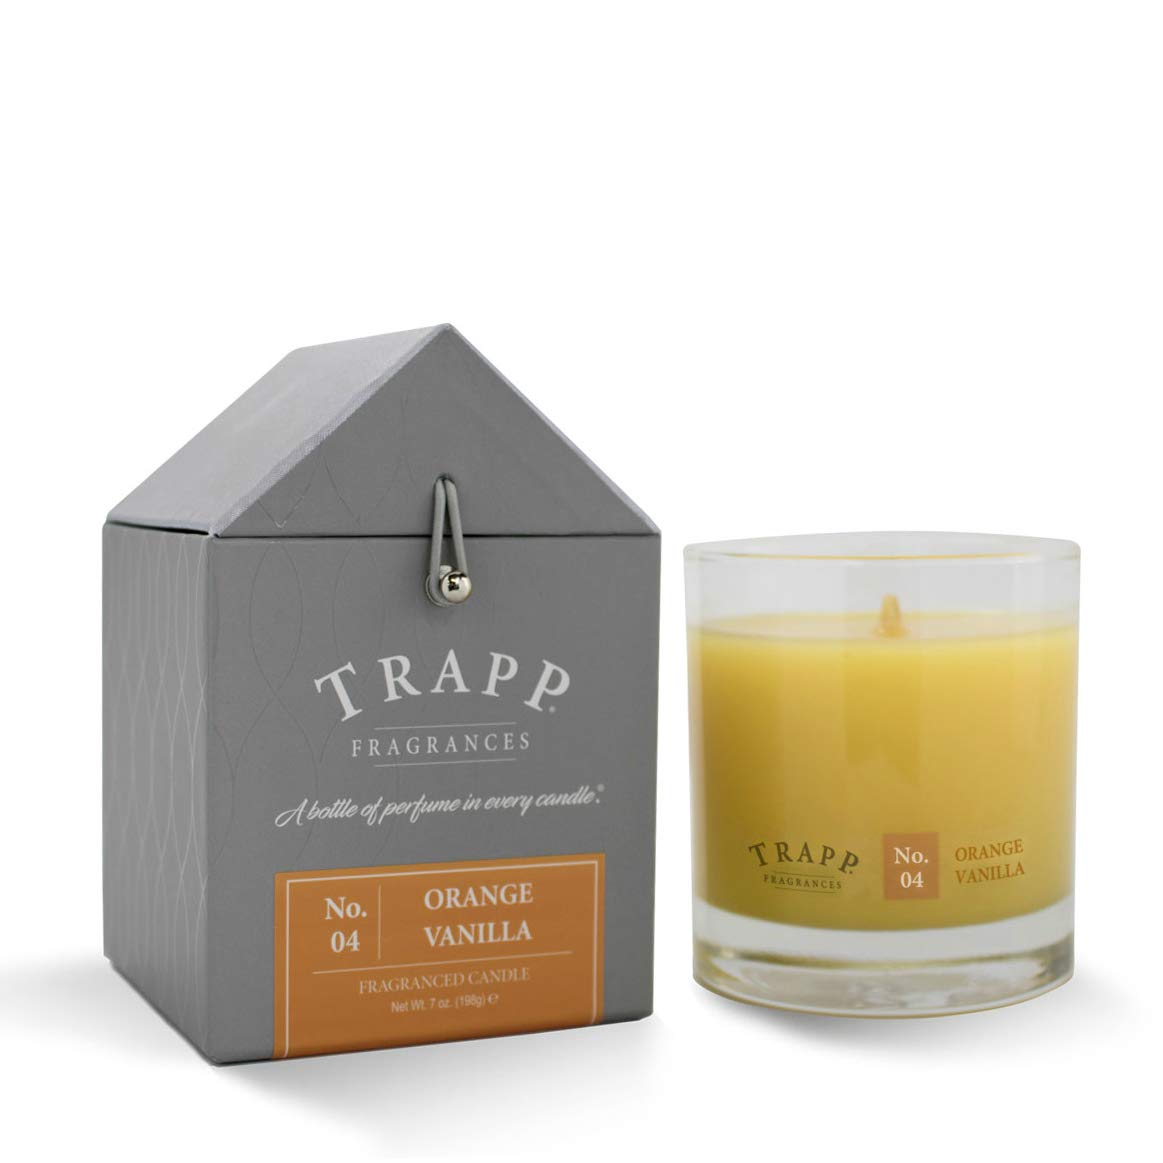 Trapp Signature Home Collection No 8 Fresh Cut Tuberose Votive Scented Candle Pack of 4 Trapp Fragrances 61108